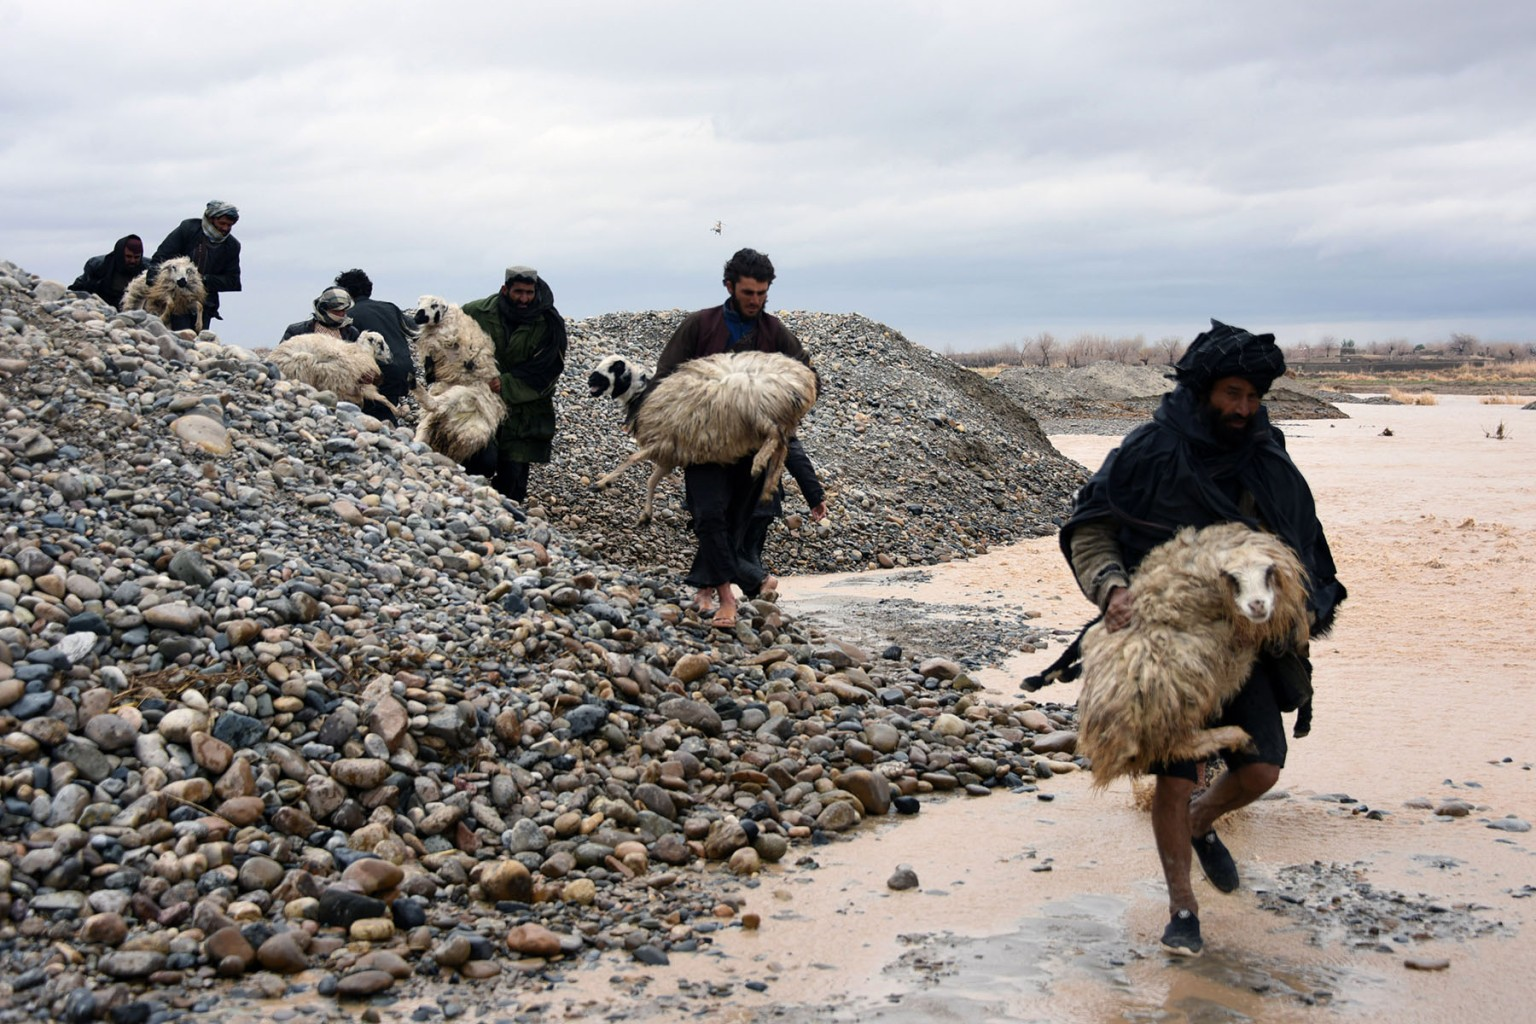 Afghan villagers carry sheep through a flood-affected area in the Arghandab district of Kandahar province on March 2. At least 20 people were killed by flash floods as heavy rains swept away homes and vehicles. JAVED TANVEER/AFP/Getty Images